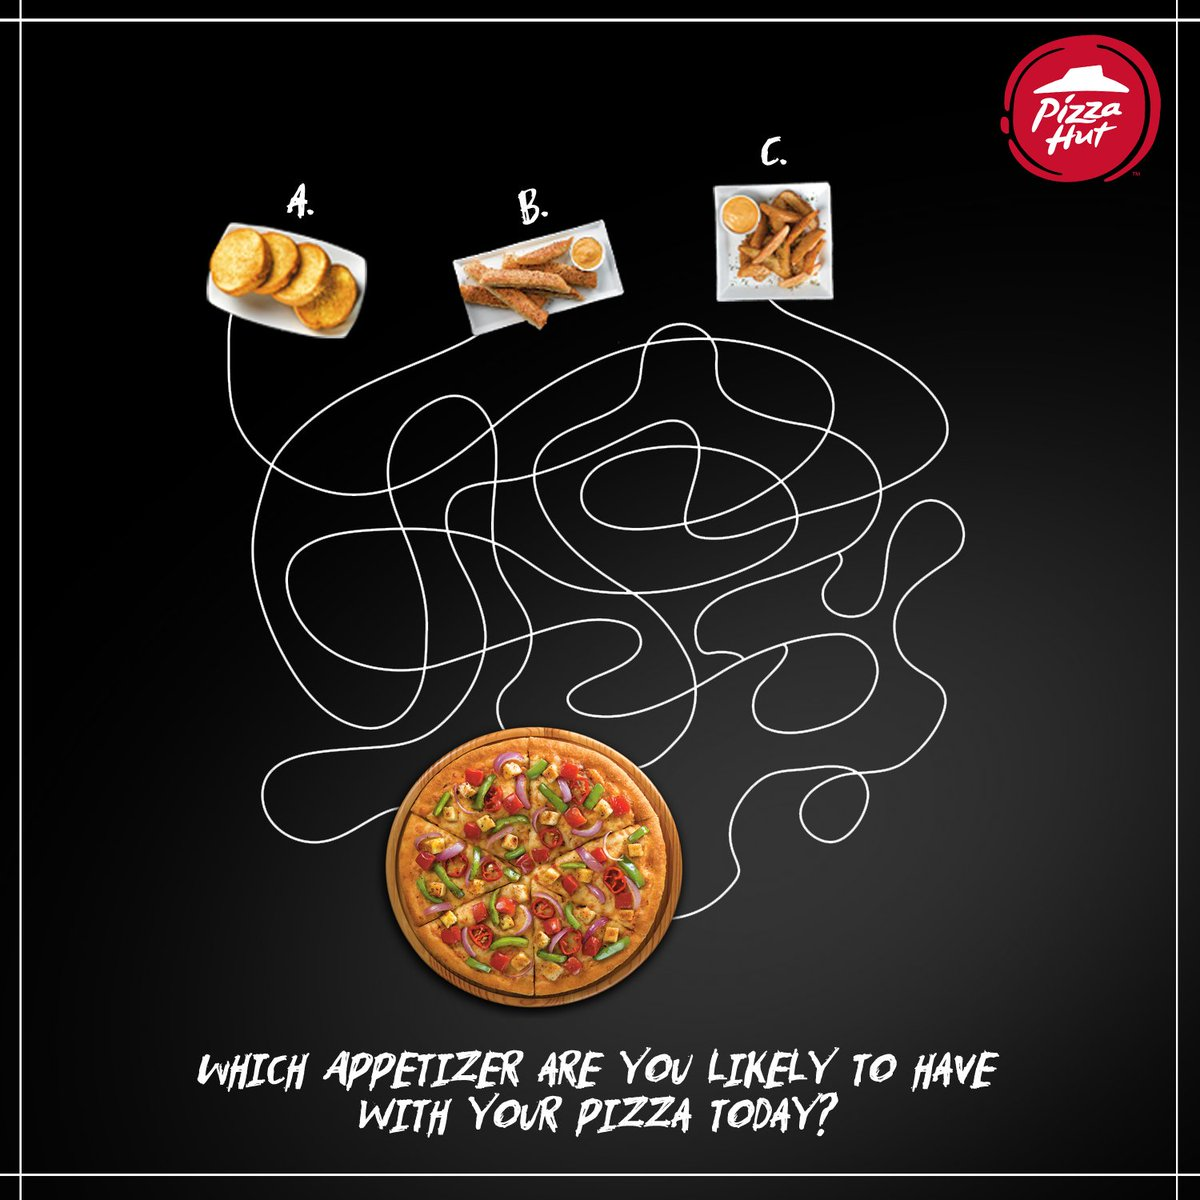 Which appetizer string is leading to pizza Take a guess. ThinkPizzaThinkPizzaHut https t.co IGL2daVxsc